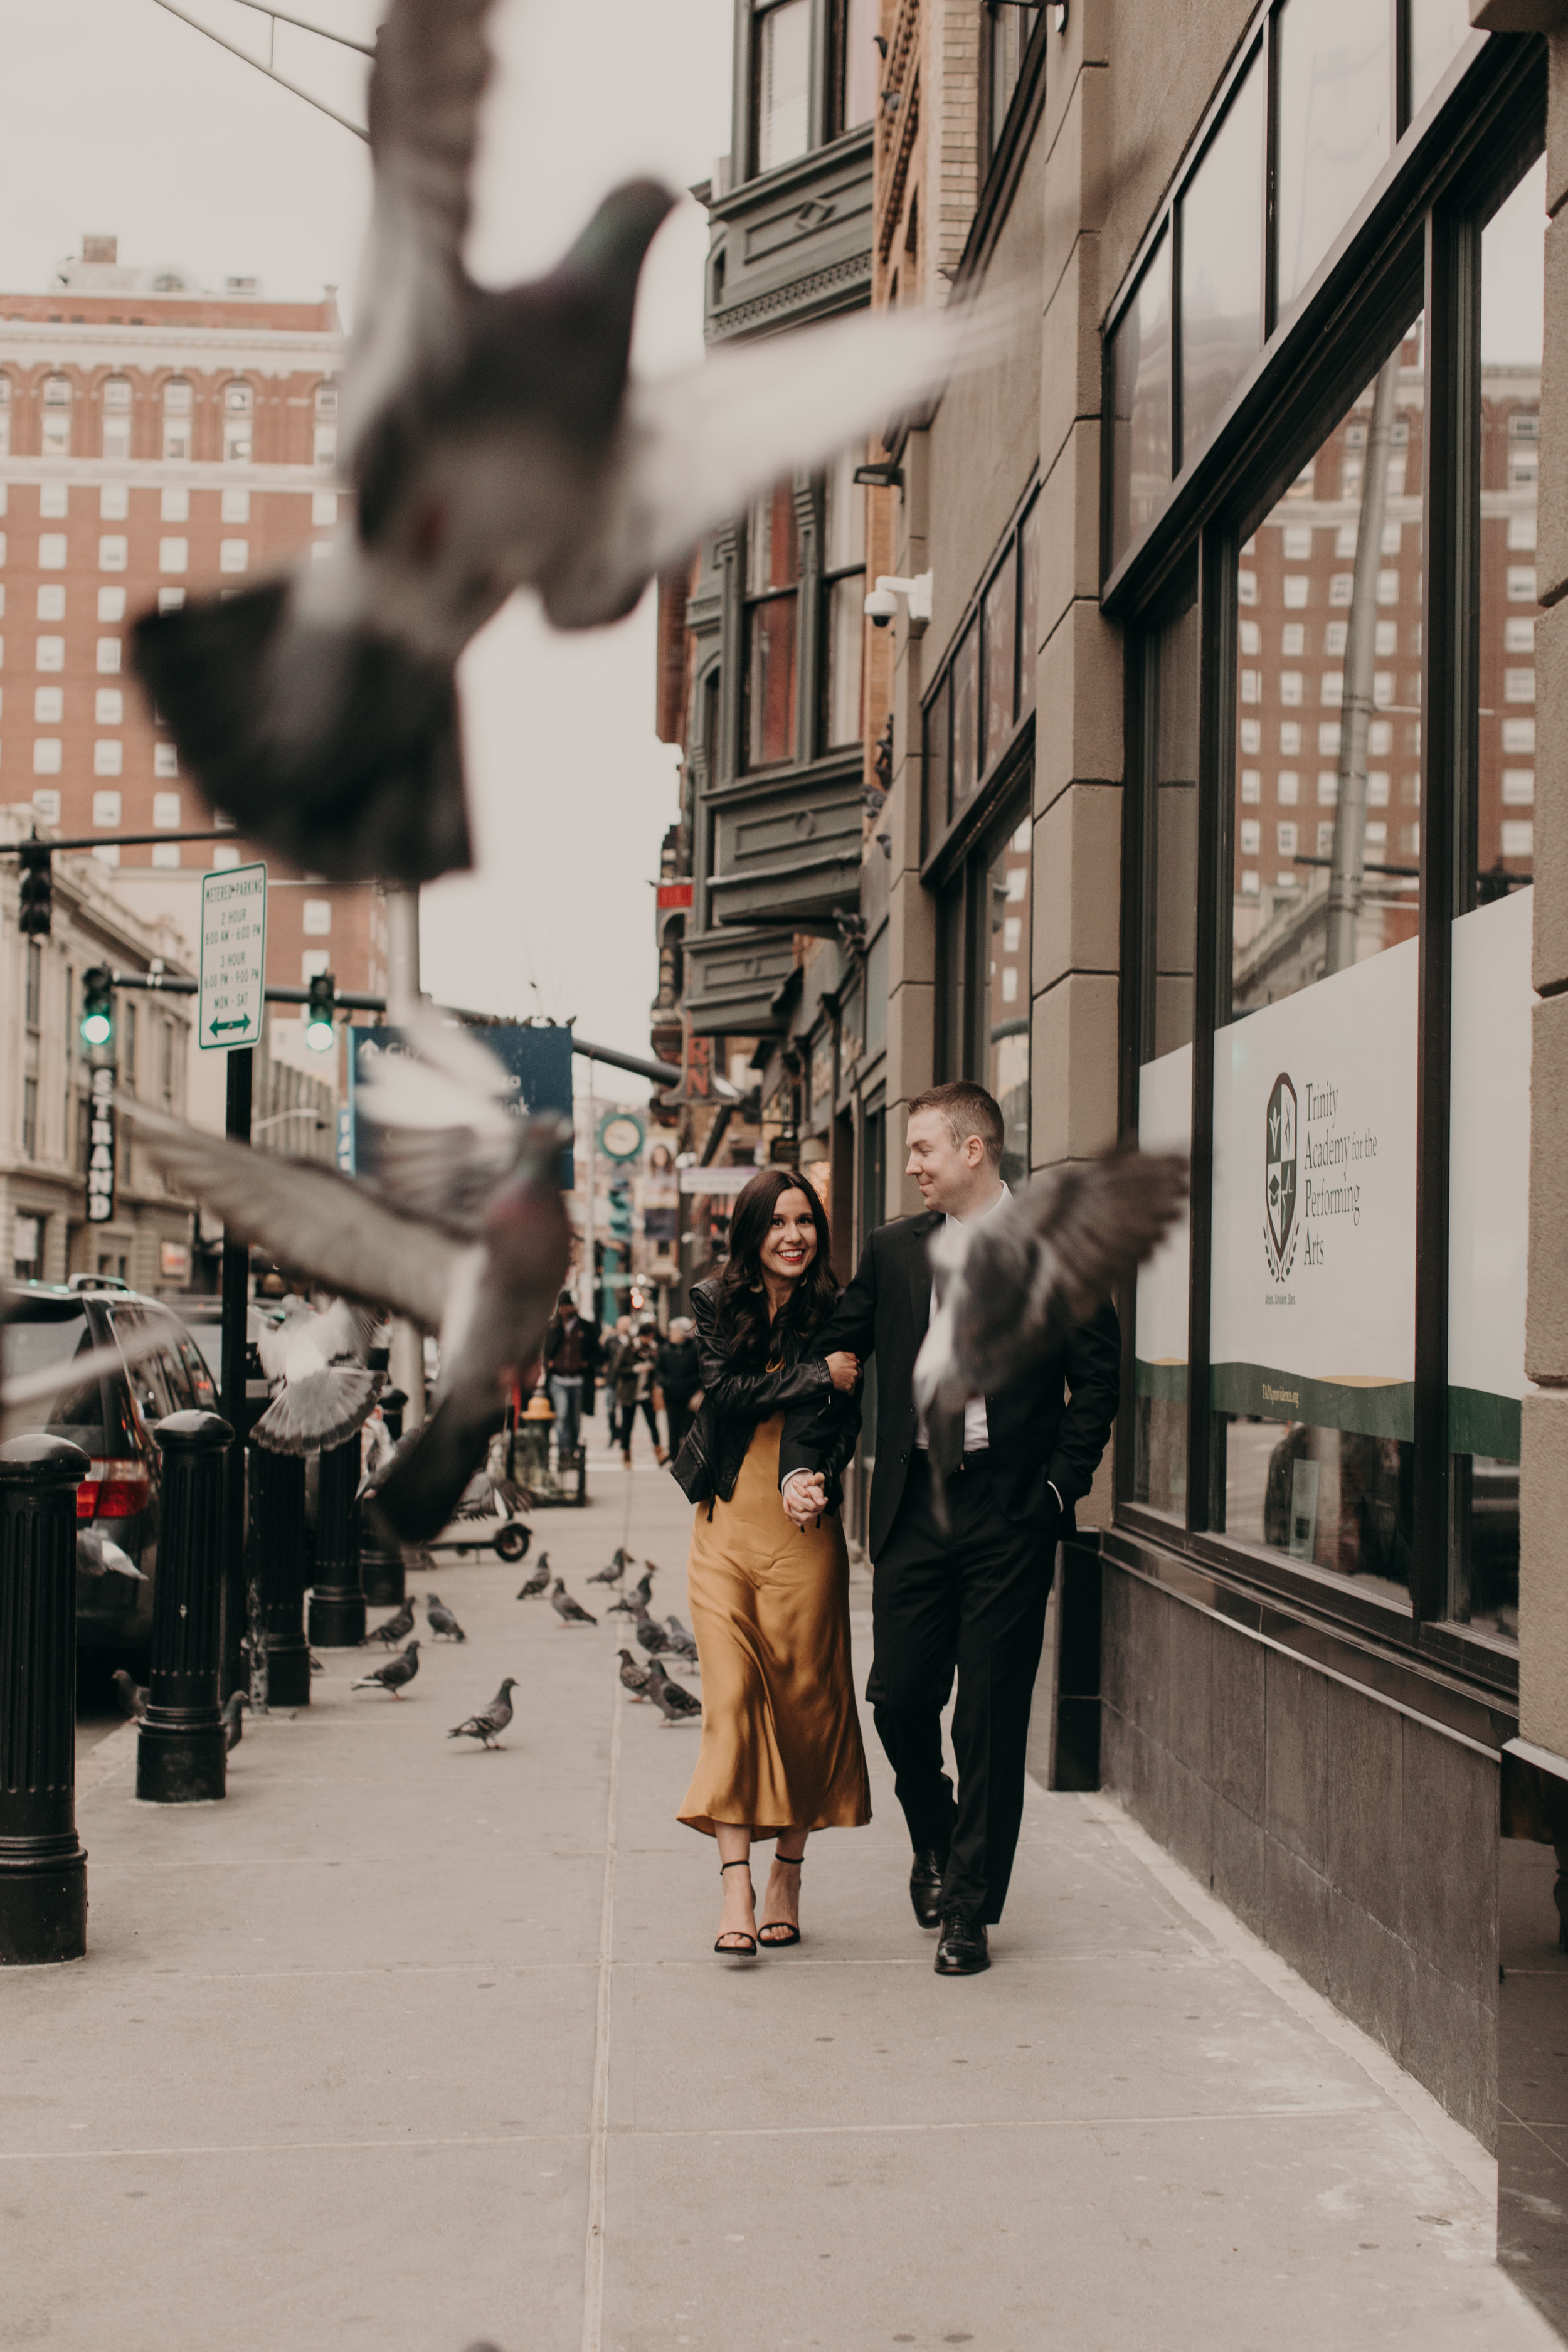 Chris_Marissa_Downtown_Providence_Rhode_Island_Engagement_Session_010.jpeg